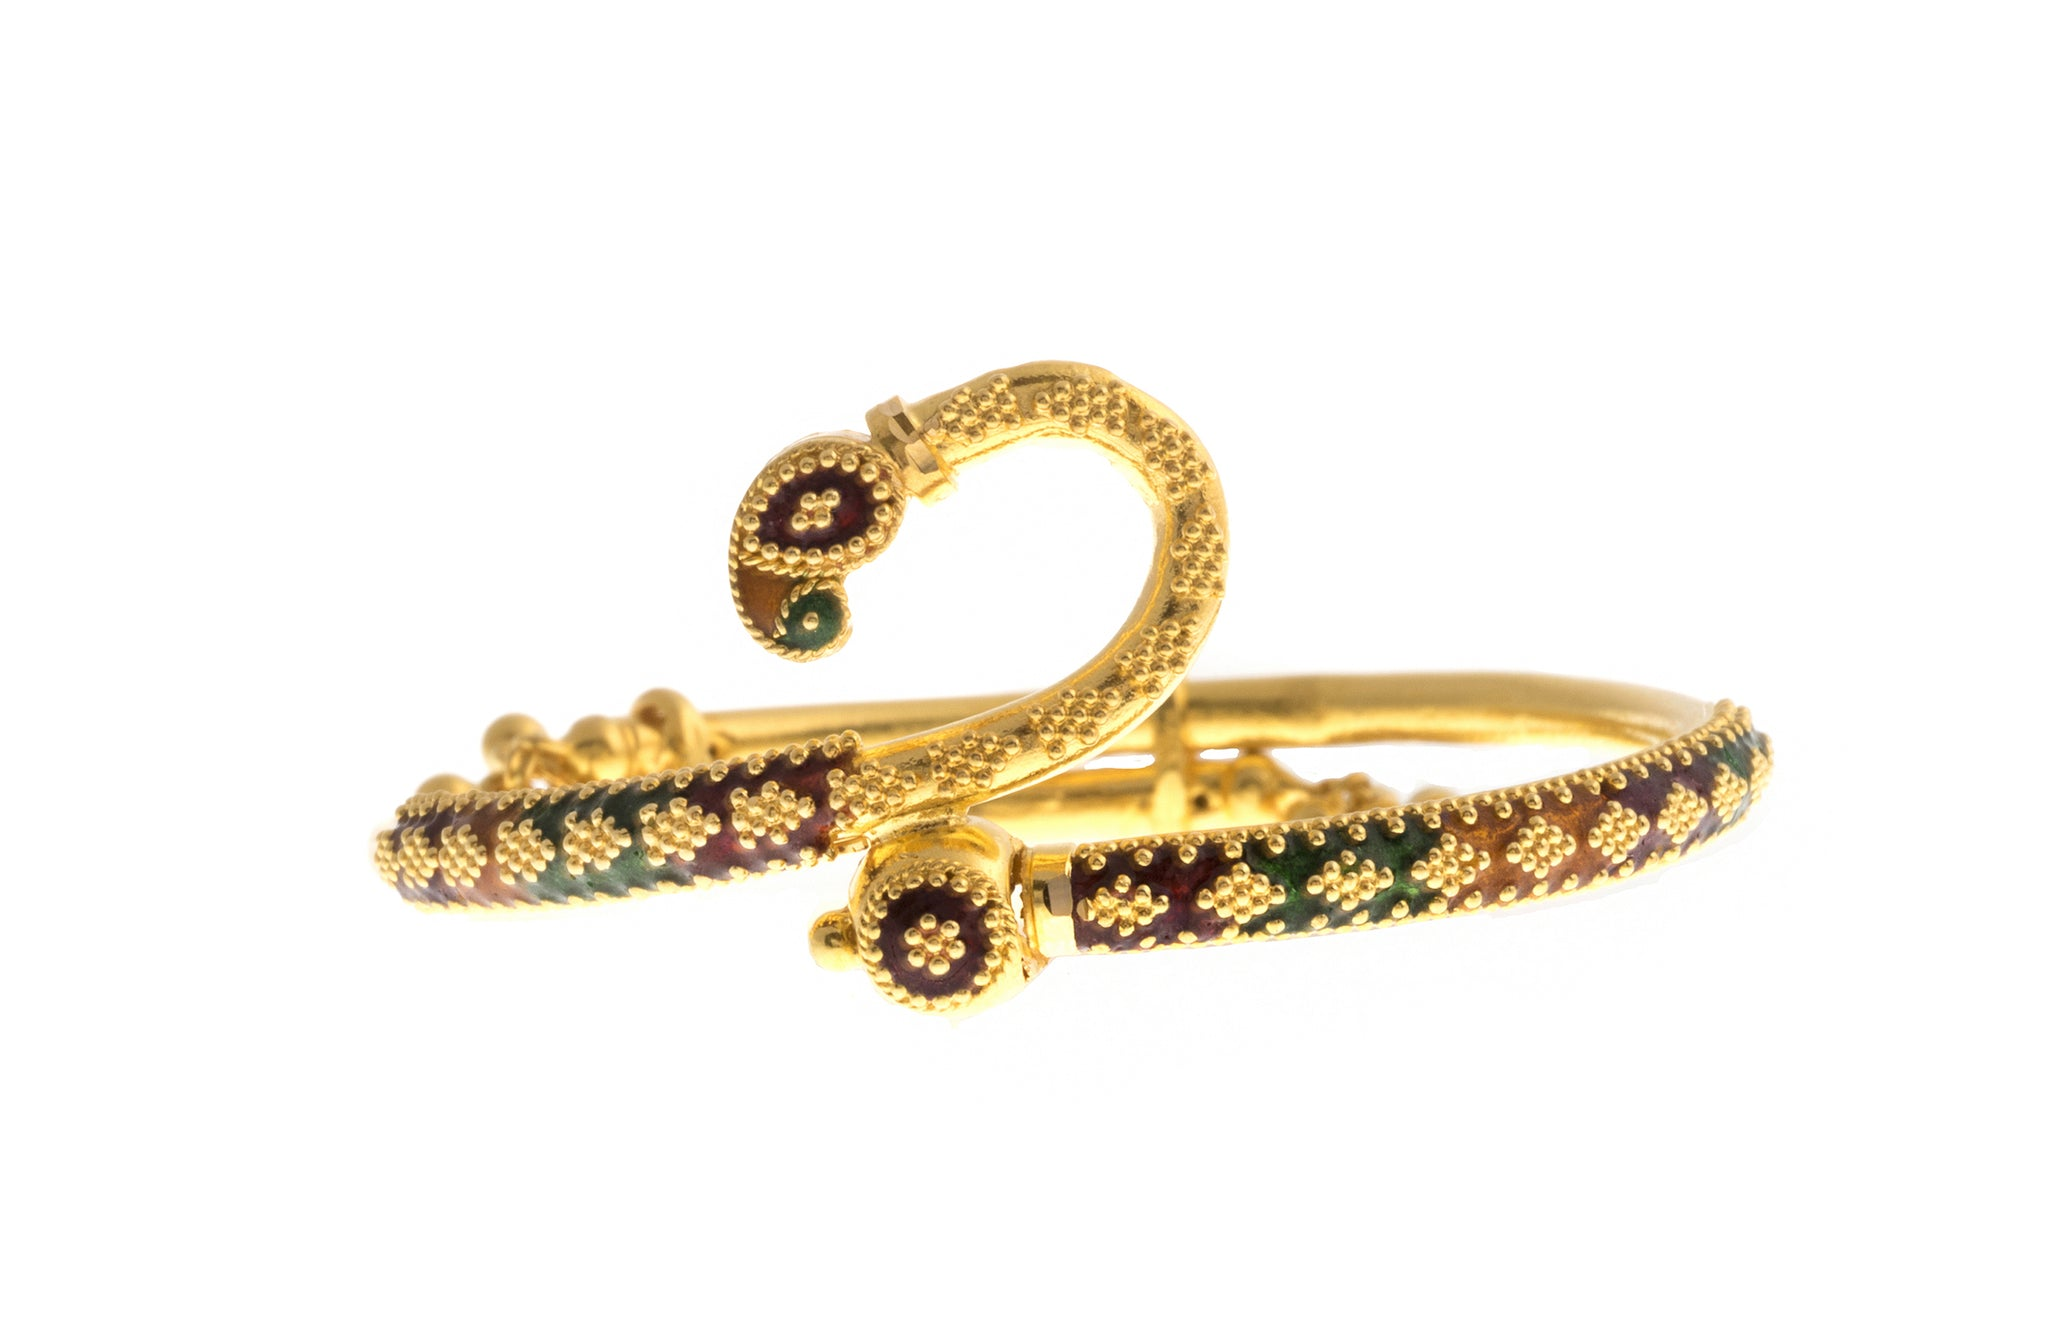 Hand Finished 22ct Yellow Gold 'Minakari' Children's Bangle (9.27g) (B-1386)